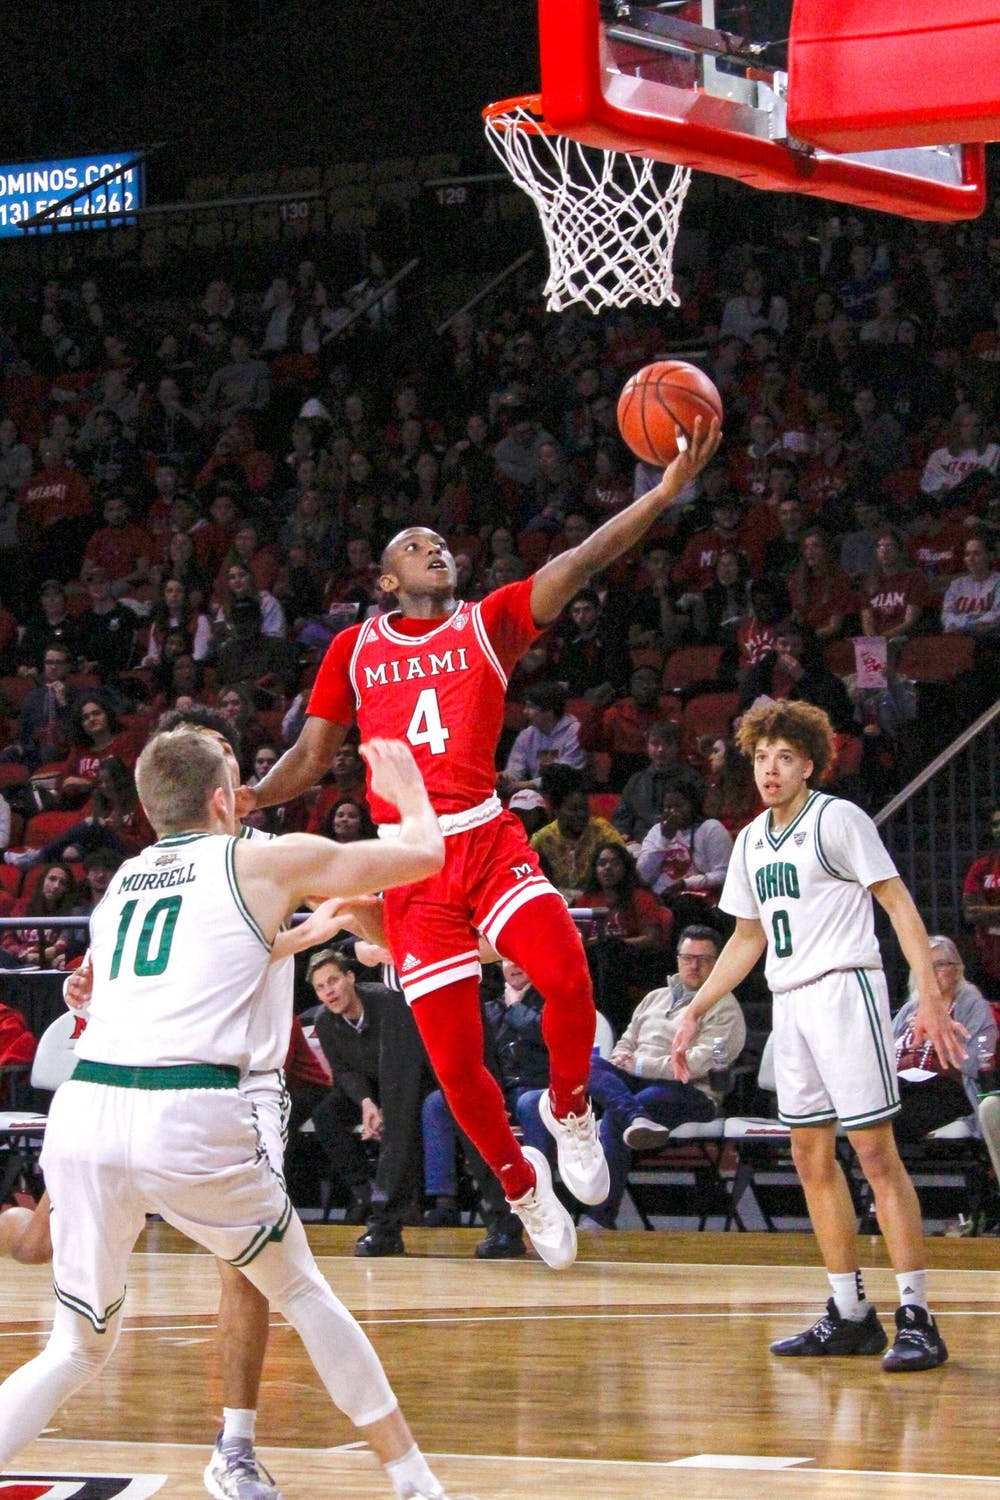 <p>Isaiah Coleman-Lands attempts a layup in a 67-65 loss to Ohio March 6 at Millett Hall. Coleman-Lands was Miami&#x27;s second-leading scorer against Buffalo in the first round of the MAC Tournament March 9.</p>